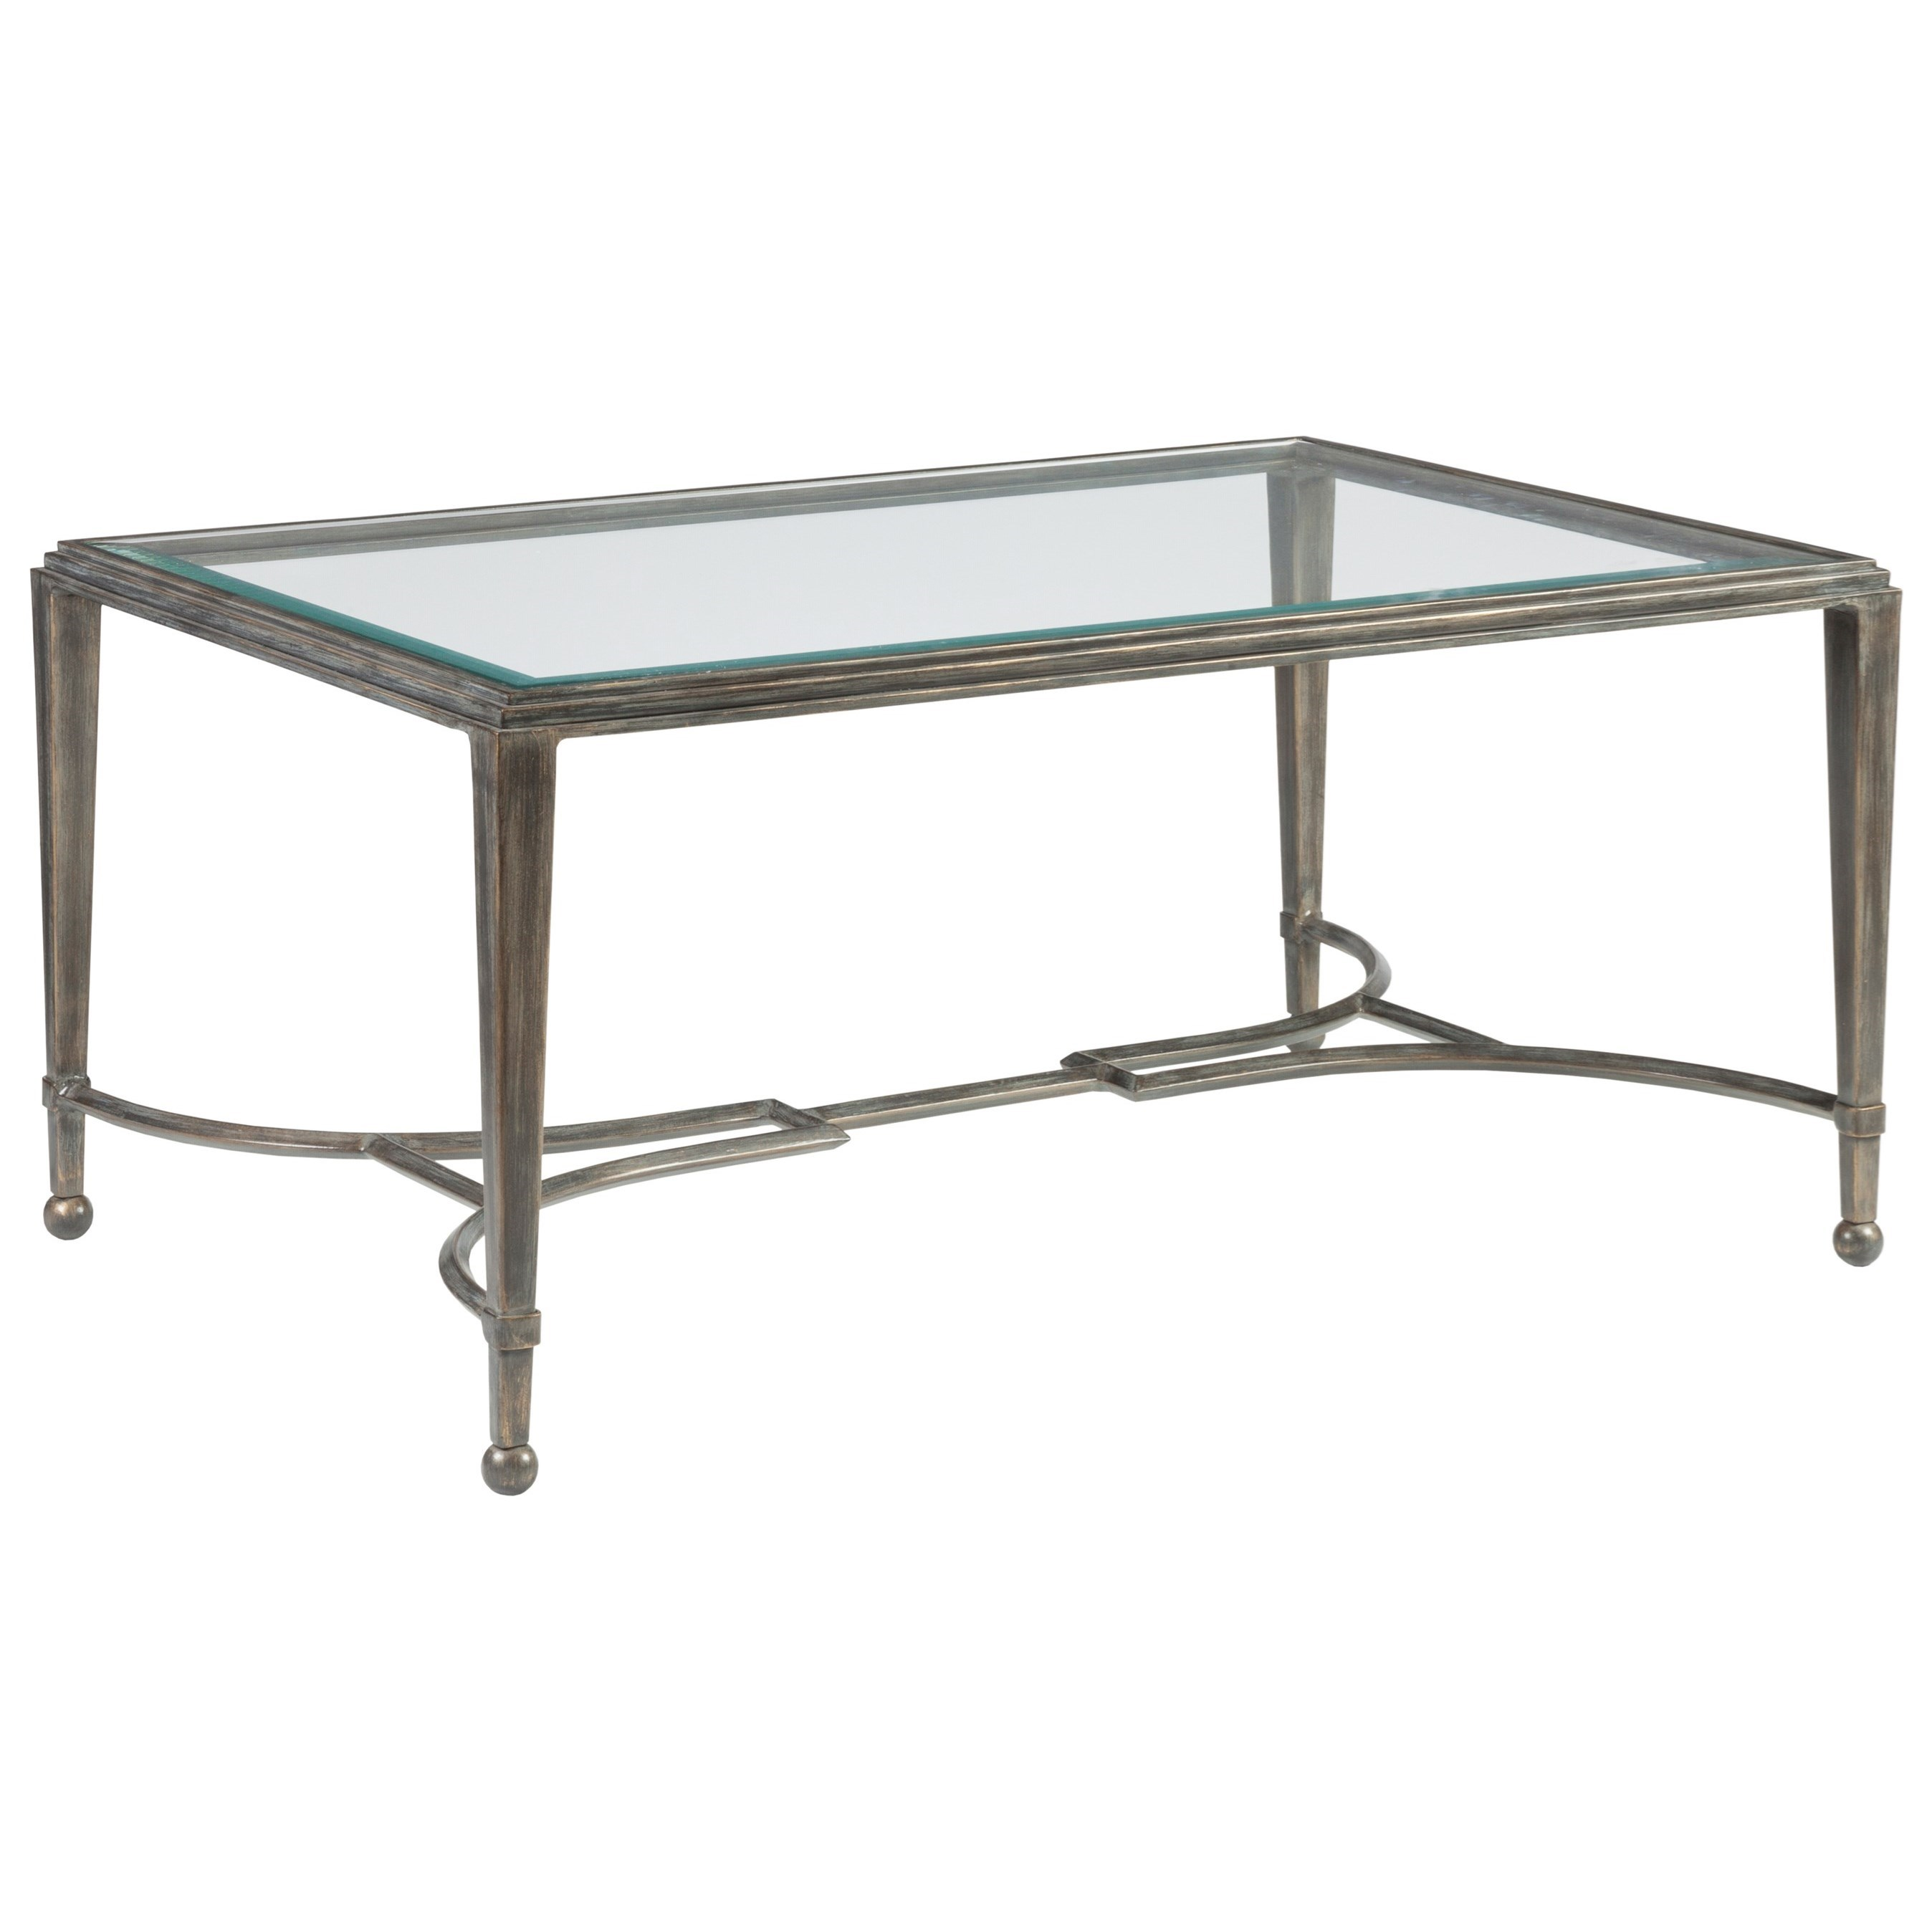 Metal Designs Sangiovese Small Rectangular Cocktail Table by Artistica at Baer's Furniture